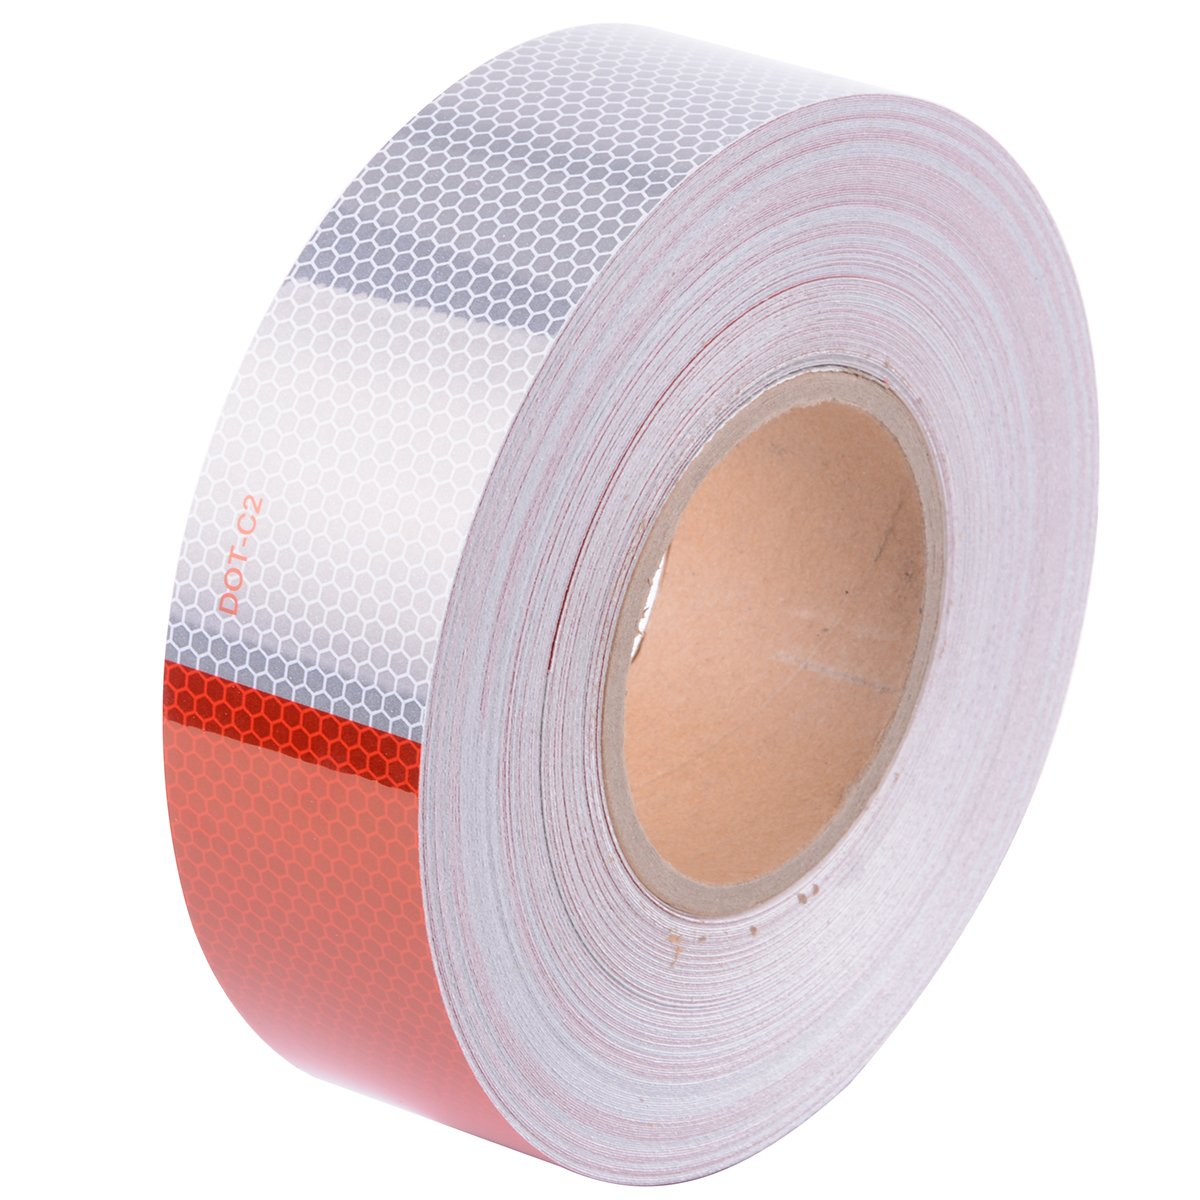 DOT-C2 High Intensity Safety Tape Reflective Tape Auto Car Red And White Adhesive (2'' x150')